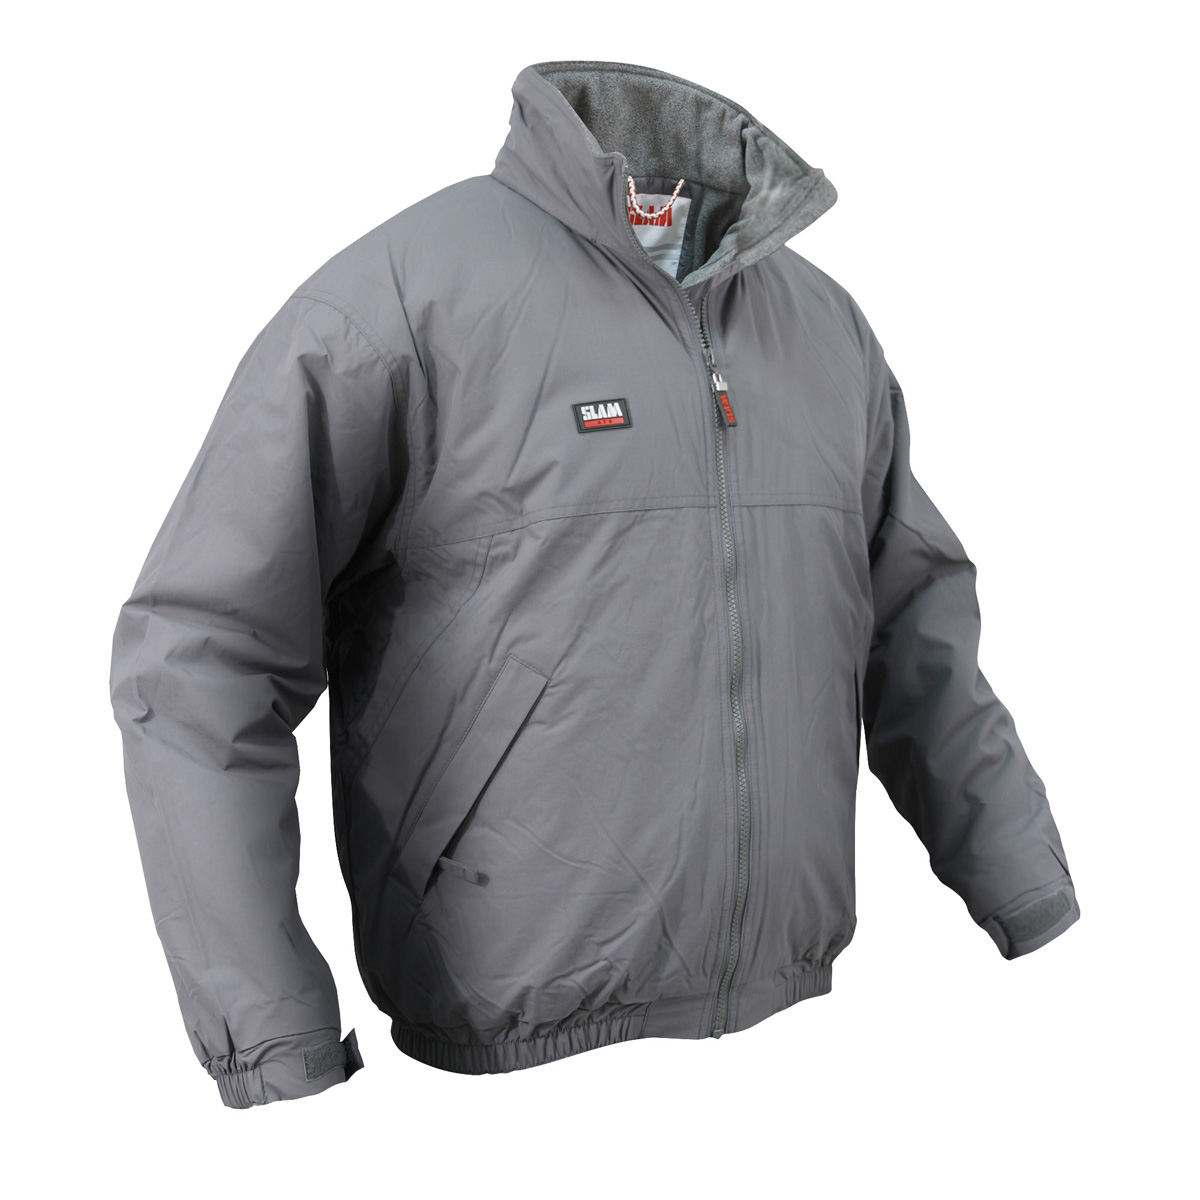 Winter Sailing Jacket - steel